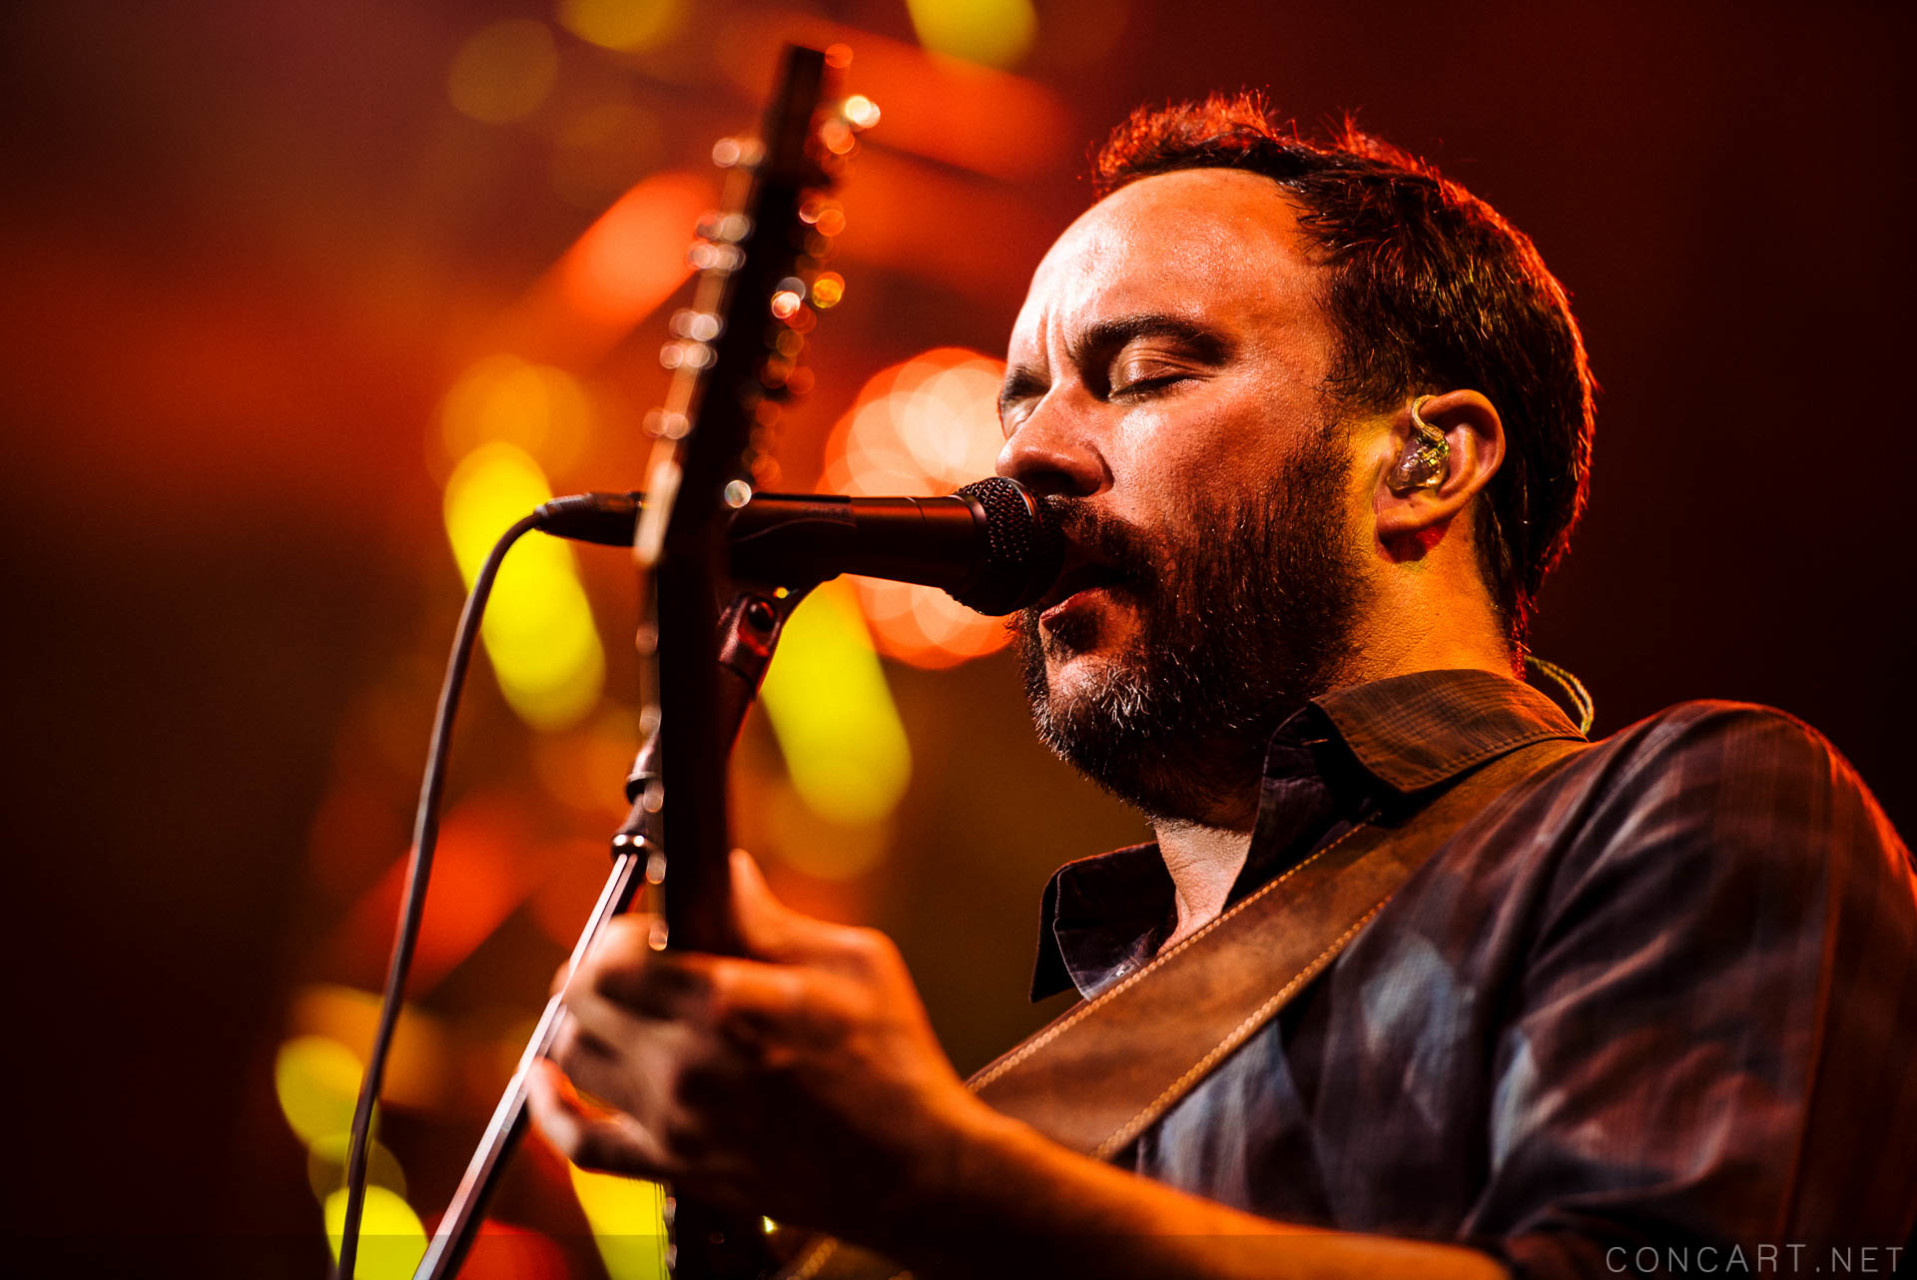 musical review dave matthews band Dave matthews band was formed in charlottesville, va in 1991 by south african native singer and guitarist dave matthews,  that he needed some musical.